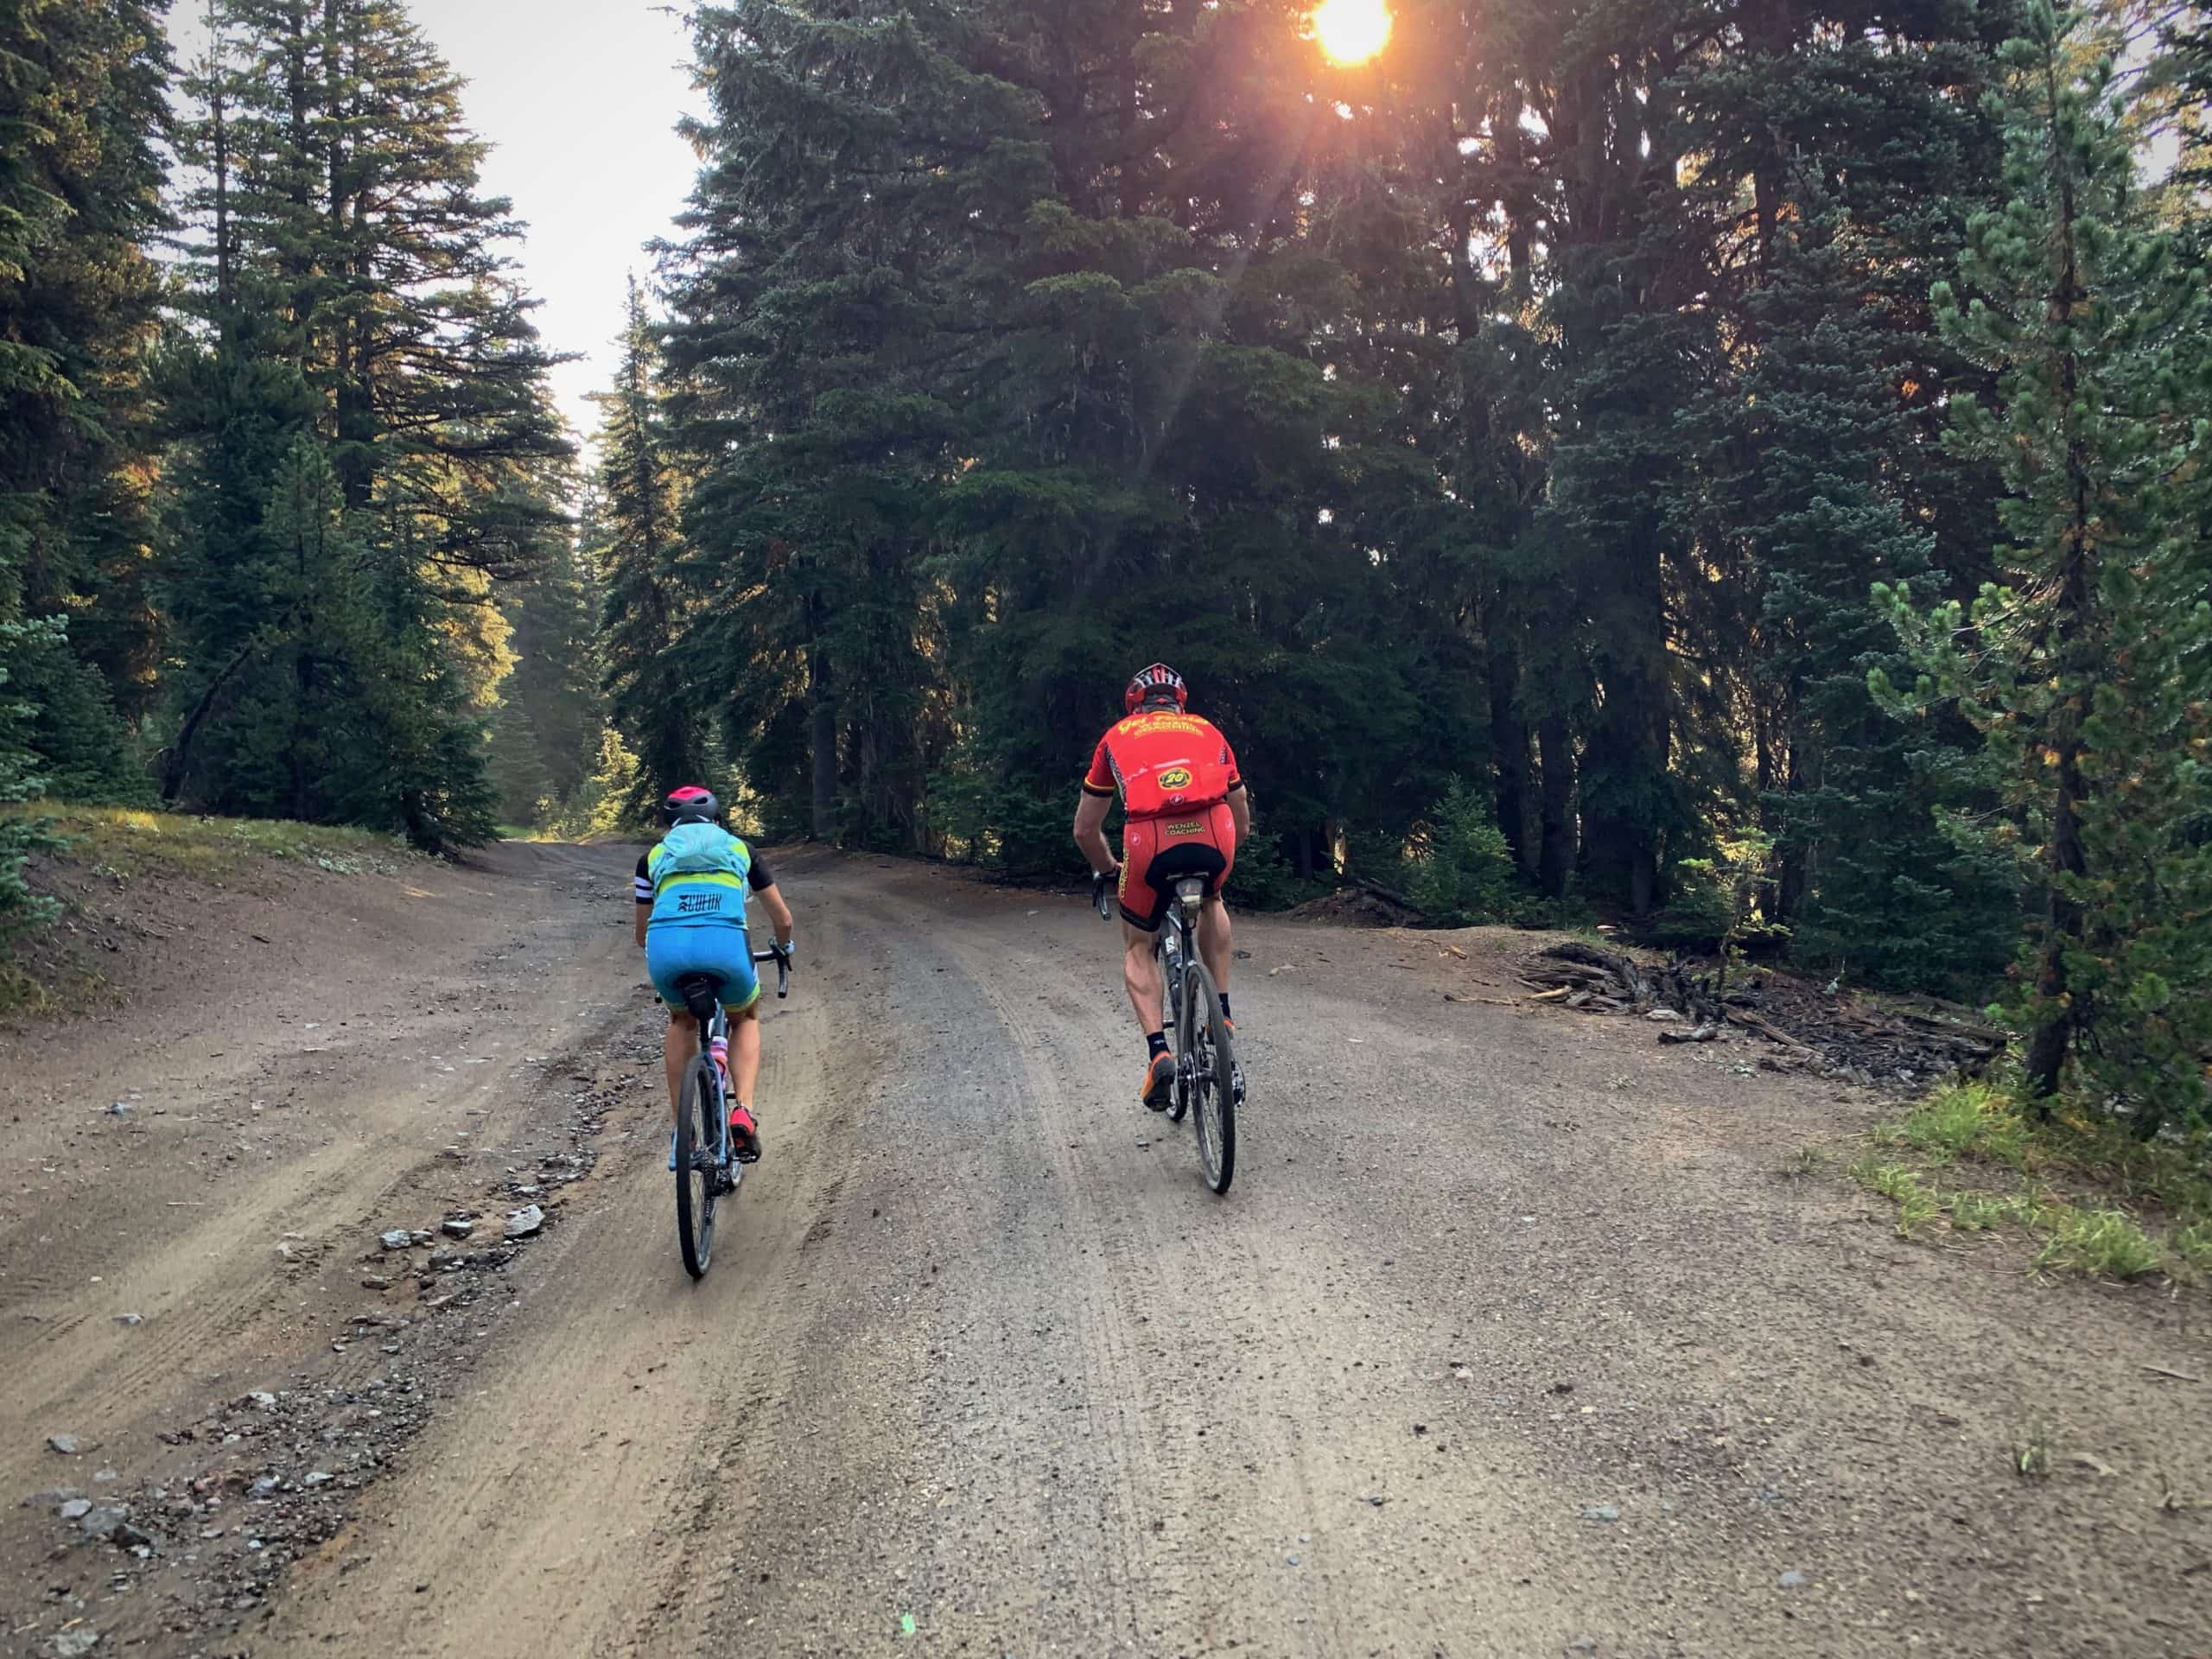 Gravel cyclists on forest roads near Todd Lake in Deschutes National Forest.